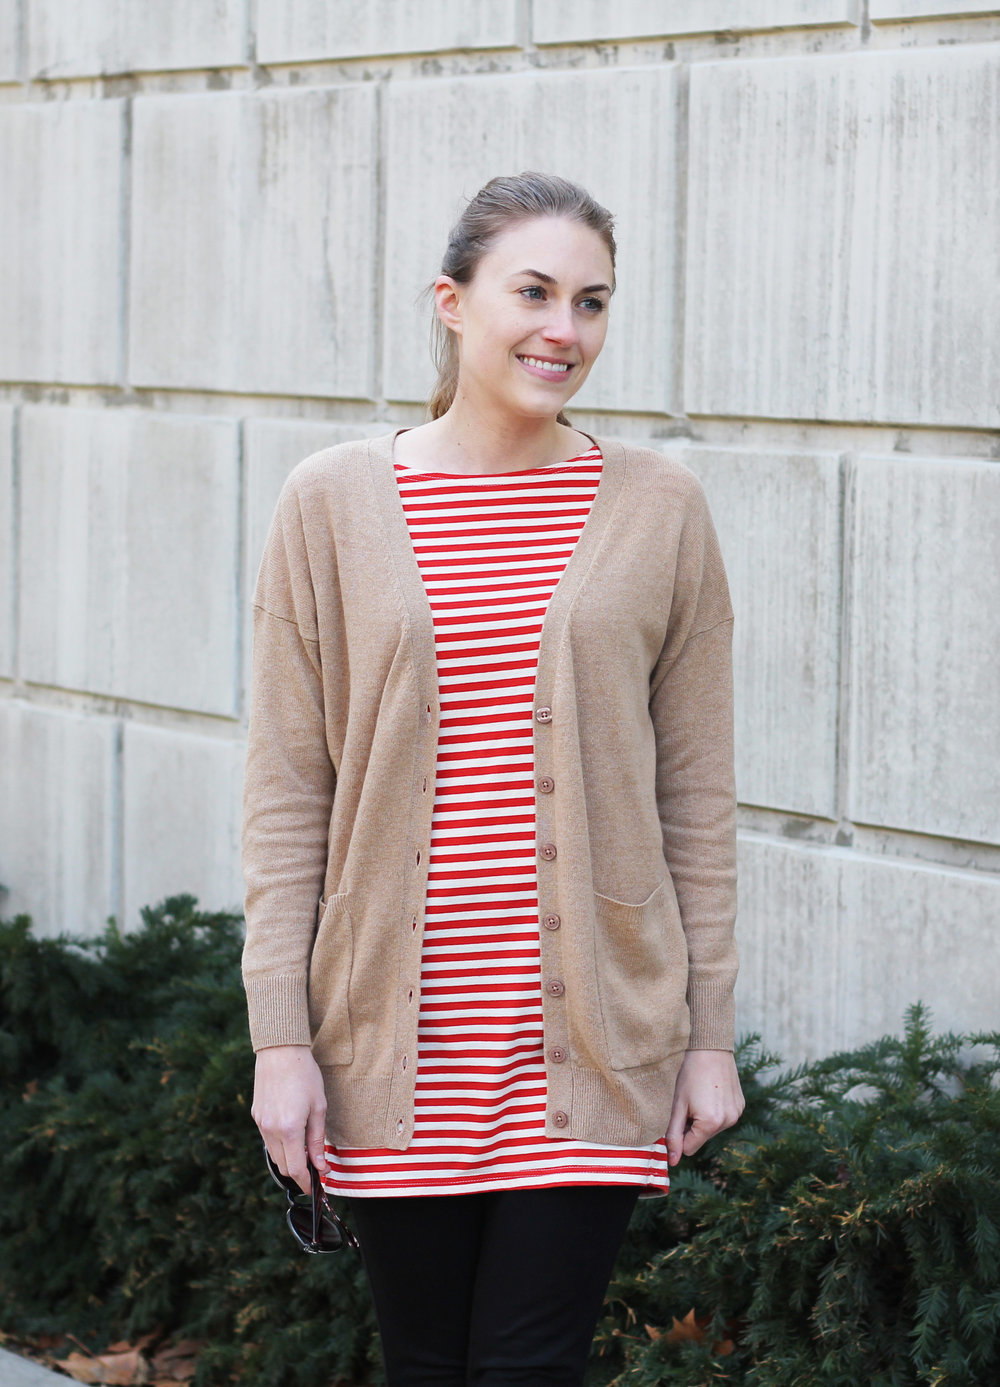 Camel cardigan outfit with red striped dress — Cotton Cashmere Cat Hair